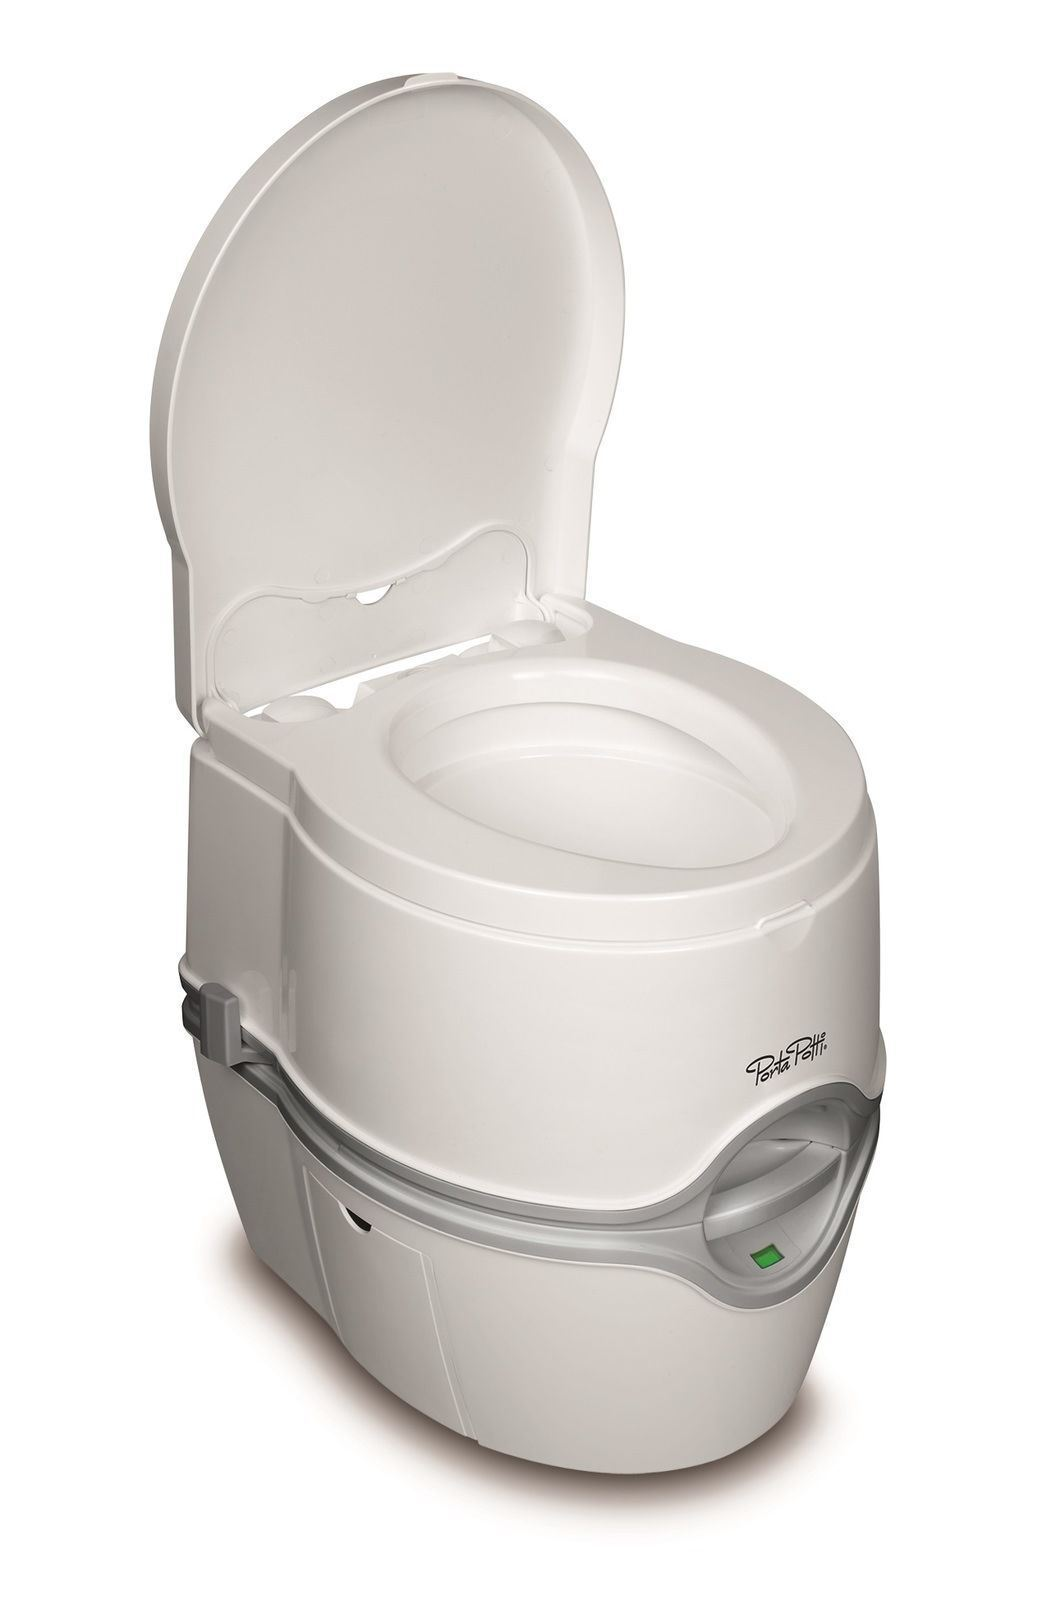 Thetford Porta Potti 565E Excellence Portable Camping Toilet with Electric Flush